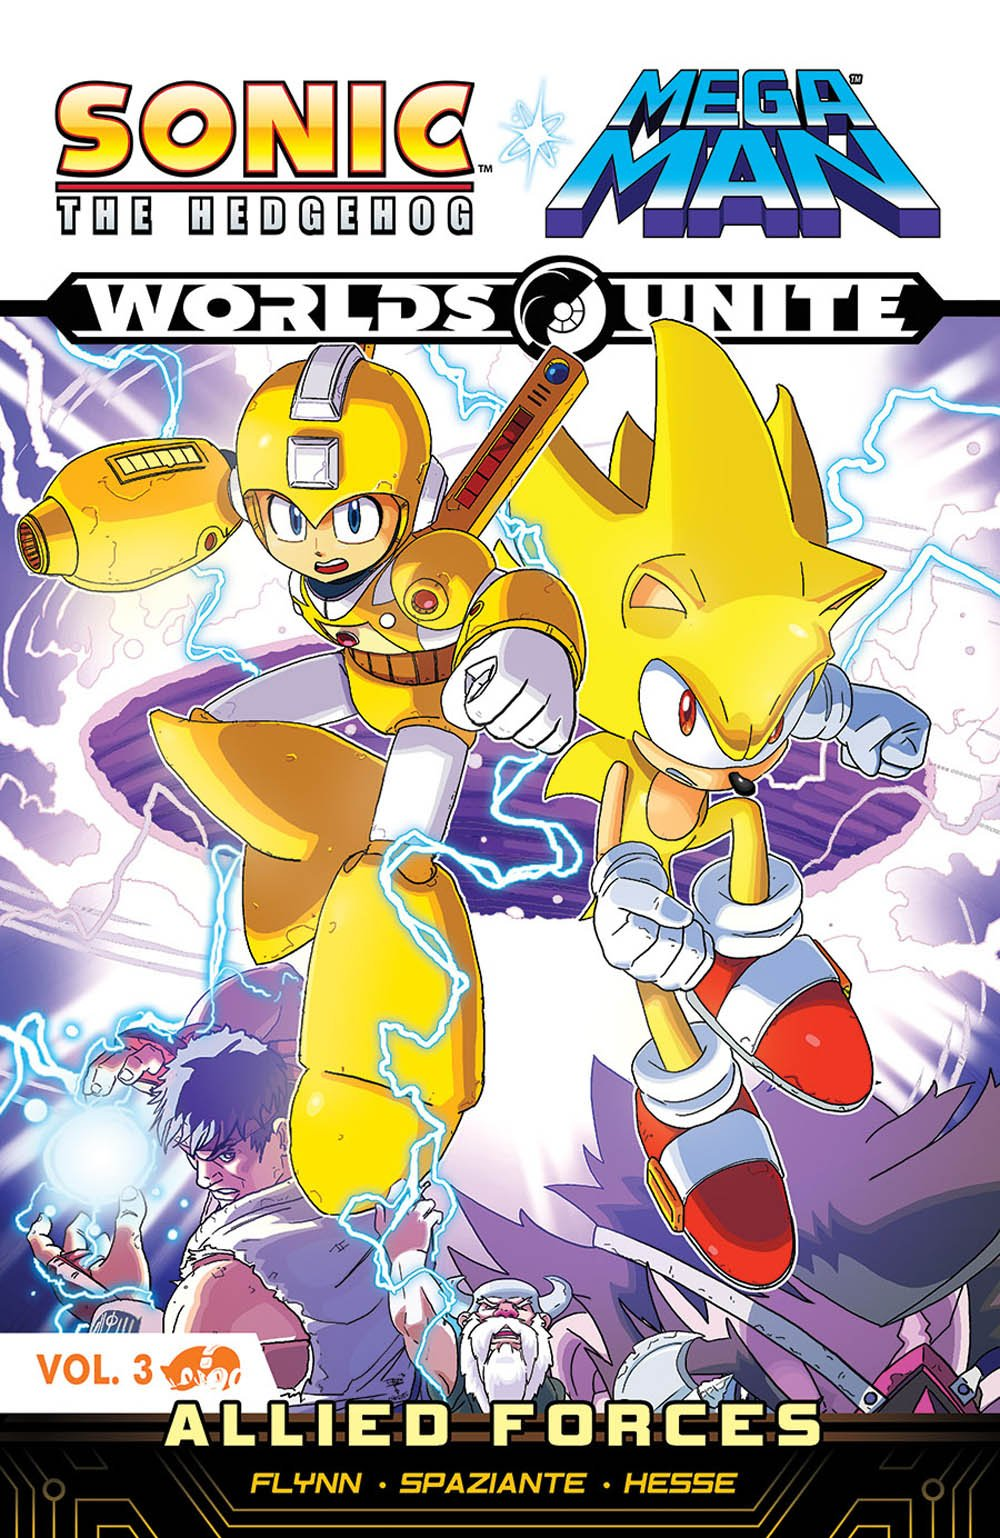 Sonic the Hedgehog / Mega Man: Worlds Unite Vol.3 - Allied Forces